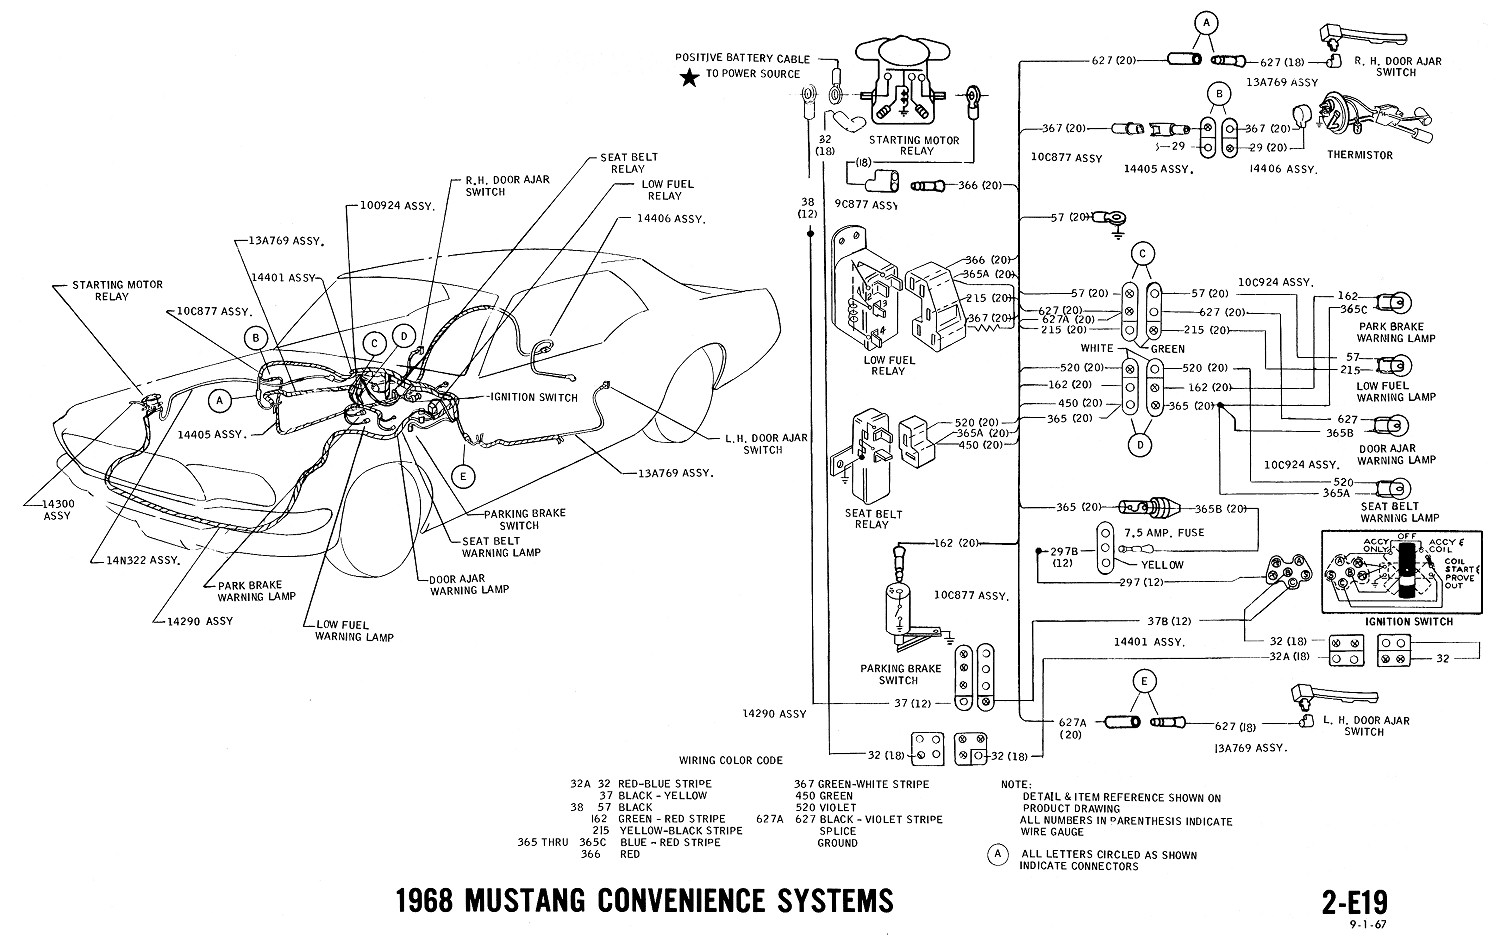 1989 Mustang Alternator Wiring Diagram